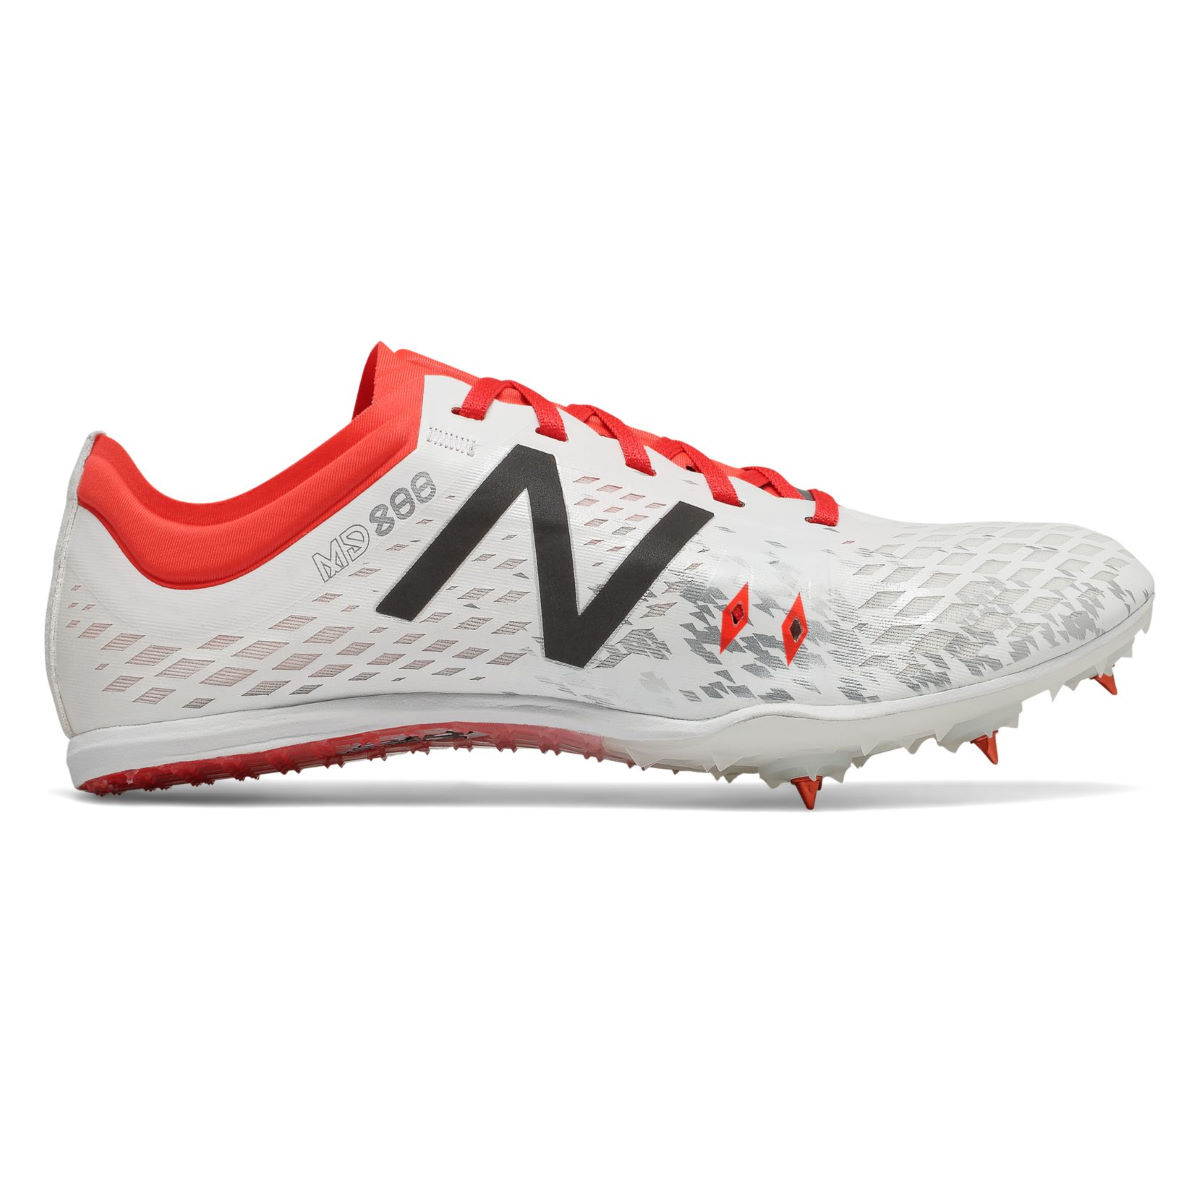 New Balance Women's MD800 v5 Shoes - Zapatillas de atletismo